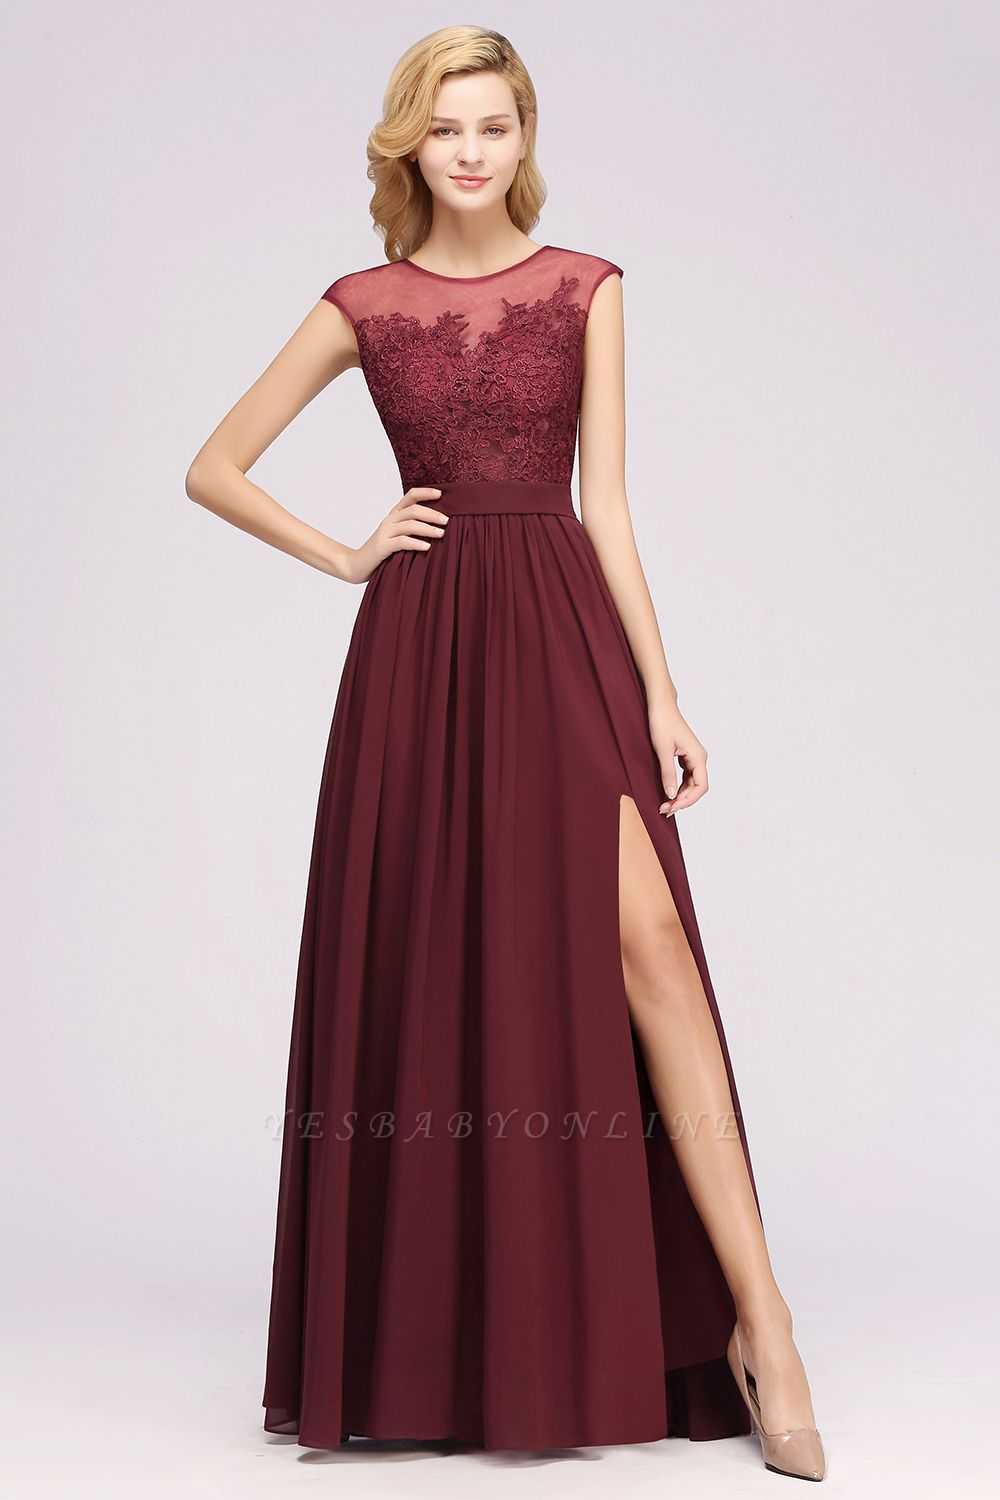 A-line  Lace Jewel Sleeveless Floor-Length Bridesmaid Dresses with Appliques